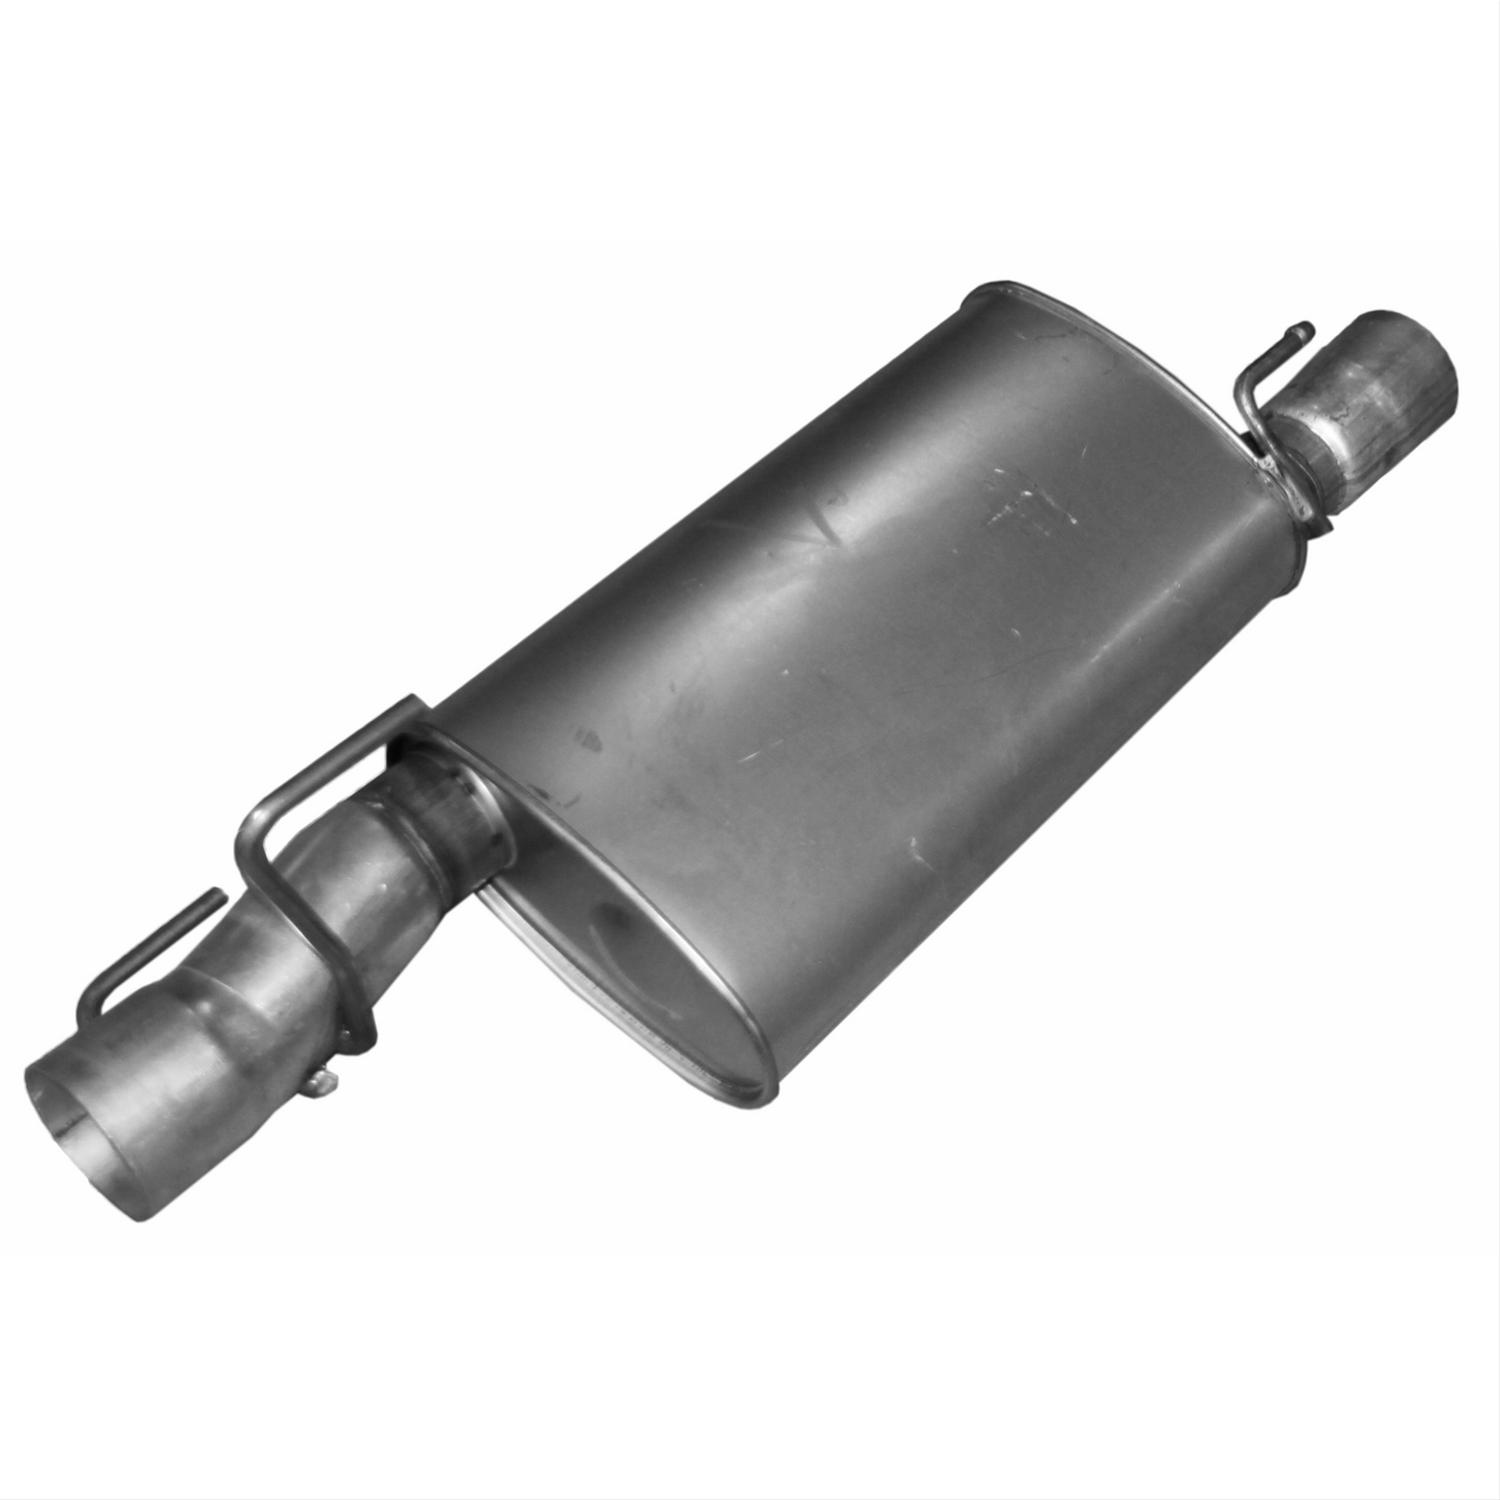 looking for quiet ss exhaust system for 2004 diesel ram moparts truck jeep 4x4 forum. Black Bedroom Furniture Sets. Home Design Ideas